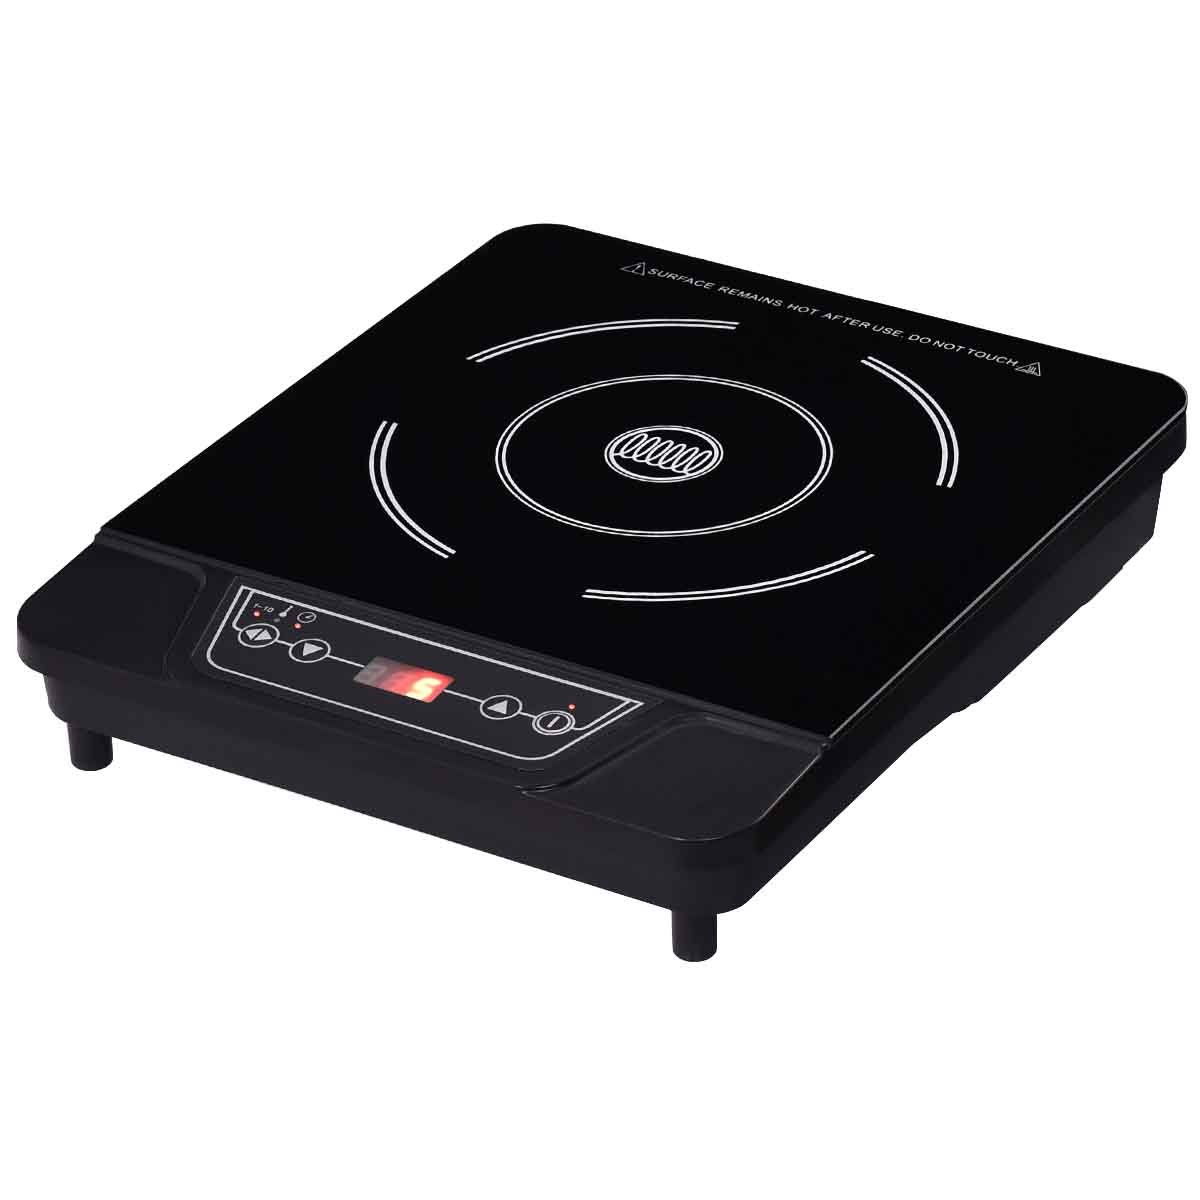 Safeplus Single Electric Cooker 1800W Portable Induction Cooktop Countertop Burner (Black)